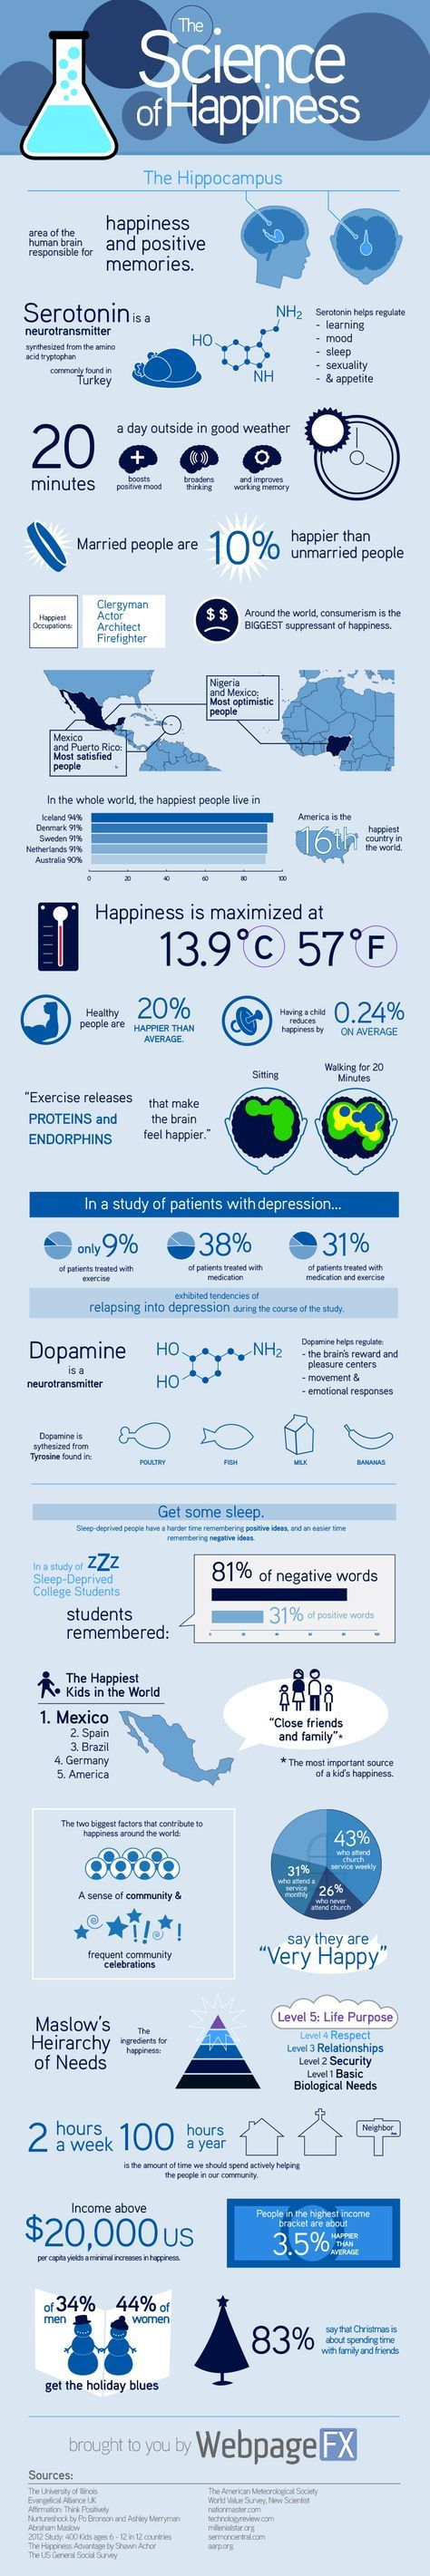 The science of happiness explained in one infographic. Just what your HR team needs to know in your business.